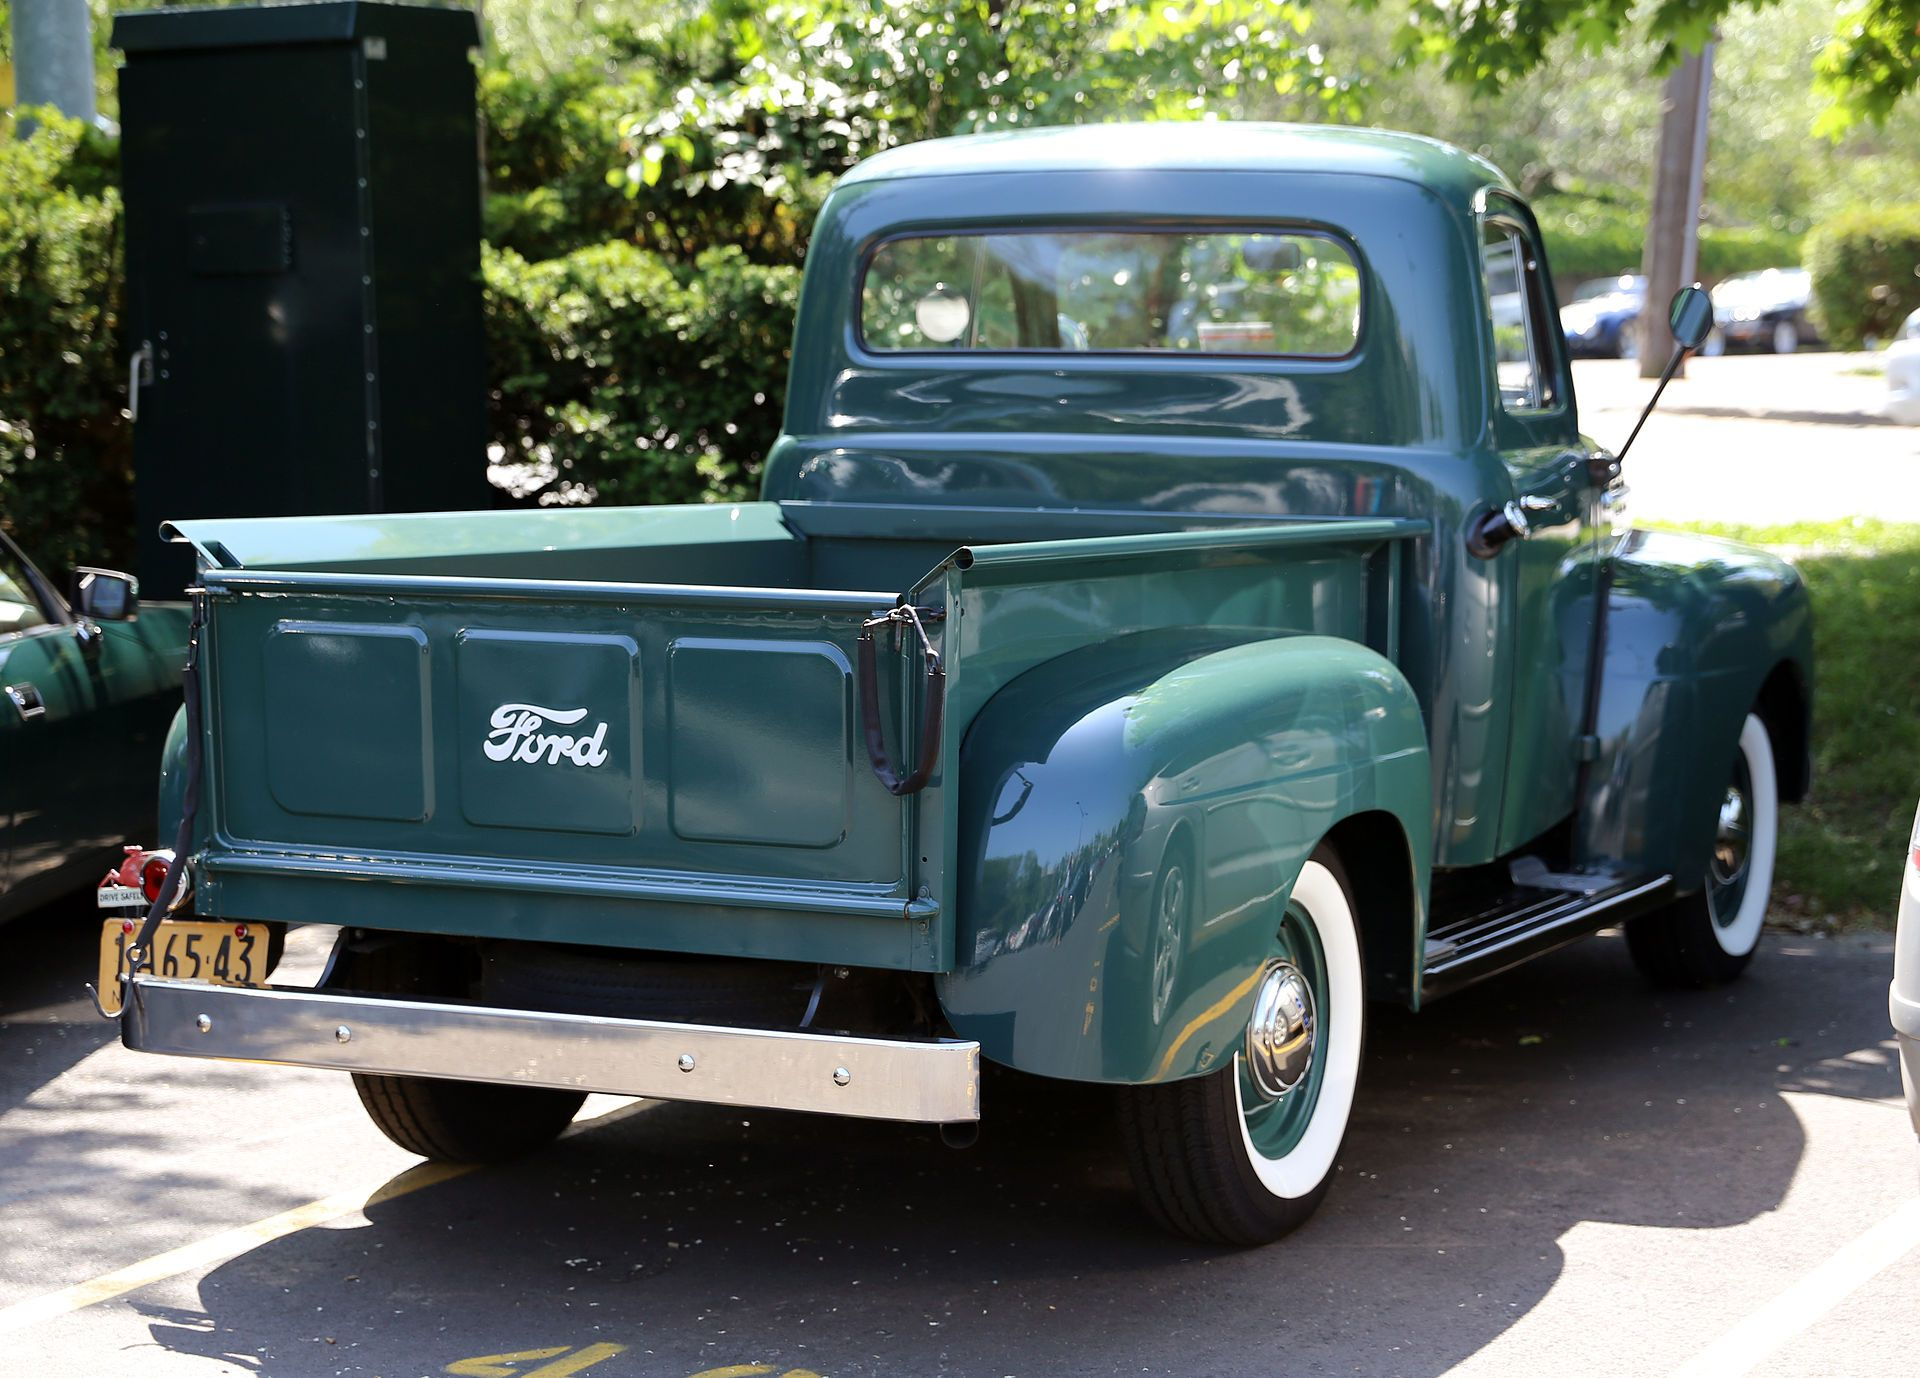 1951 Ford F Series Showing The Larger Rear Window